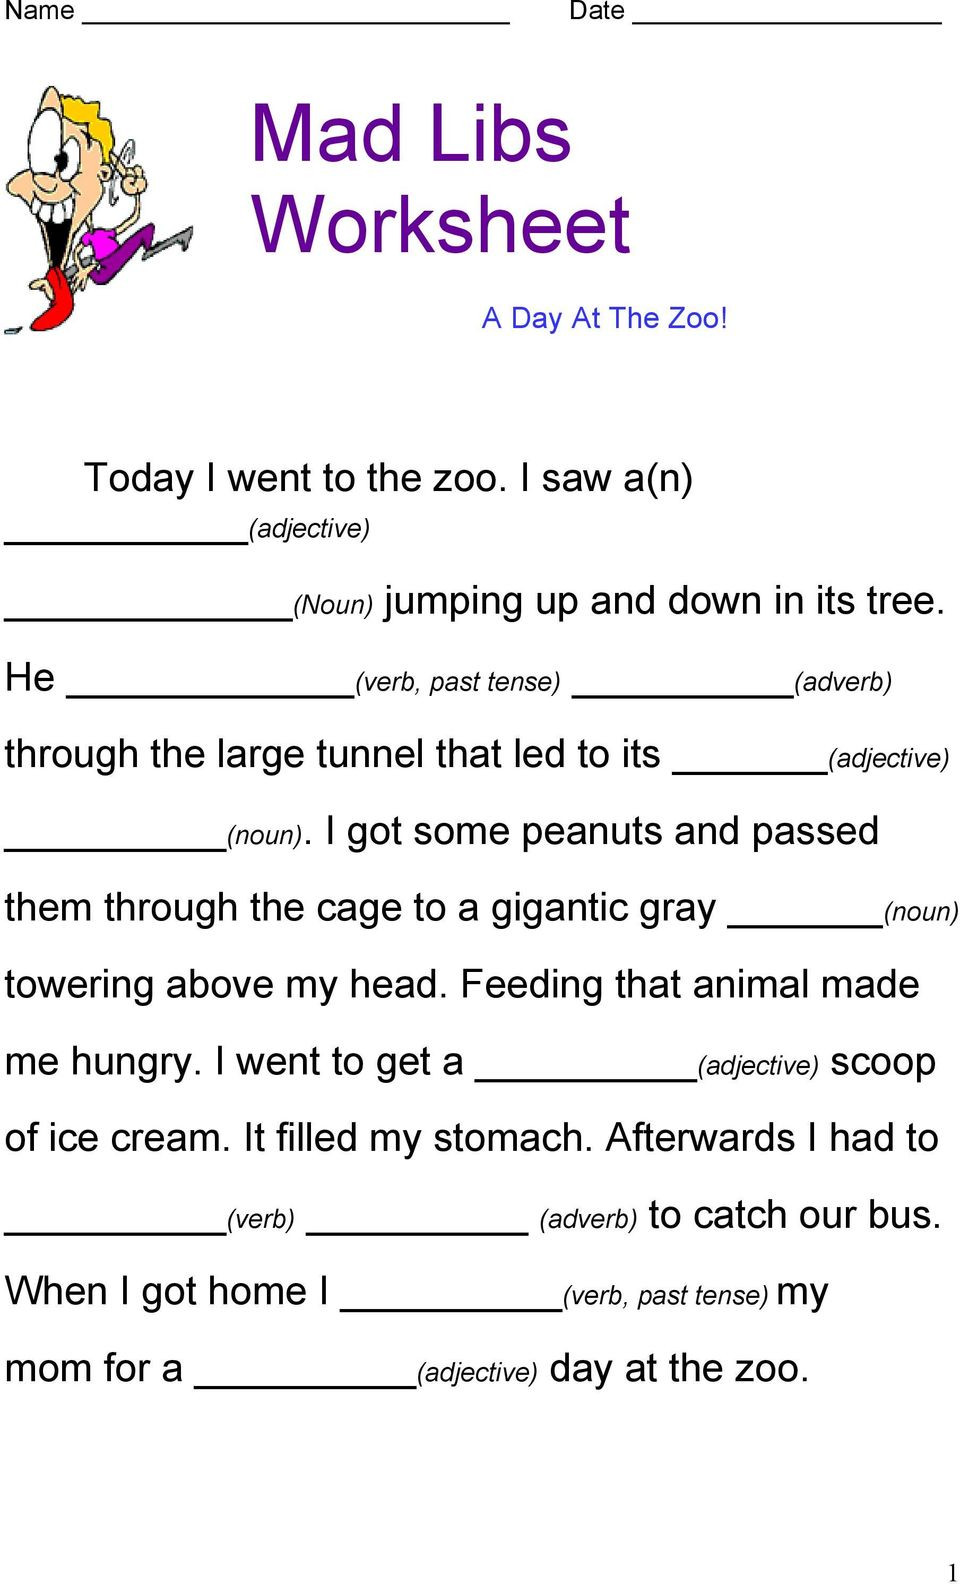 Adjective Worksheets 2nd Grade Mad Libs Worksheet today Went to the Zoo Saw He Verb